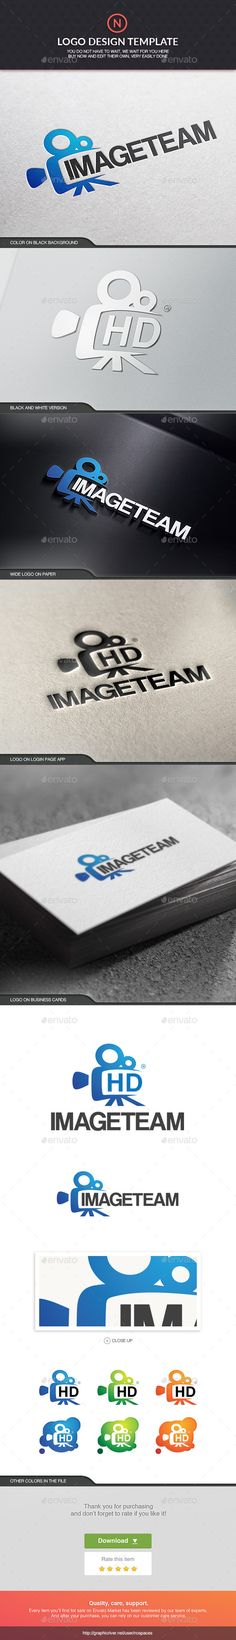 Image Team - Logo Design Template Vector #logotype Download it here: http://graphicriver.net/item/image-team/6210867?s_rank=14?ref=nexion